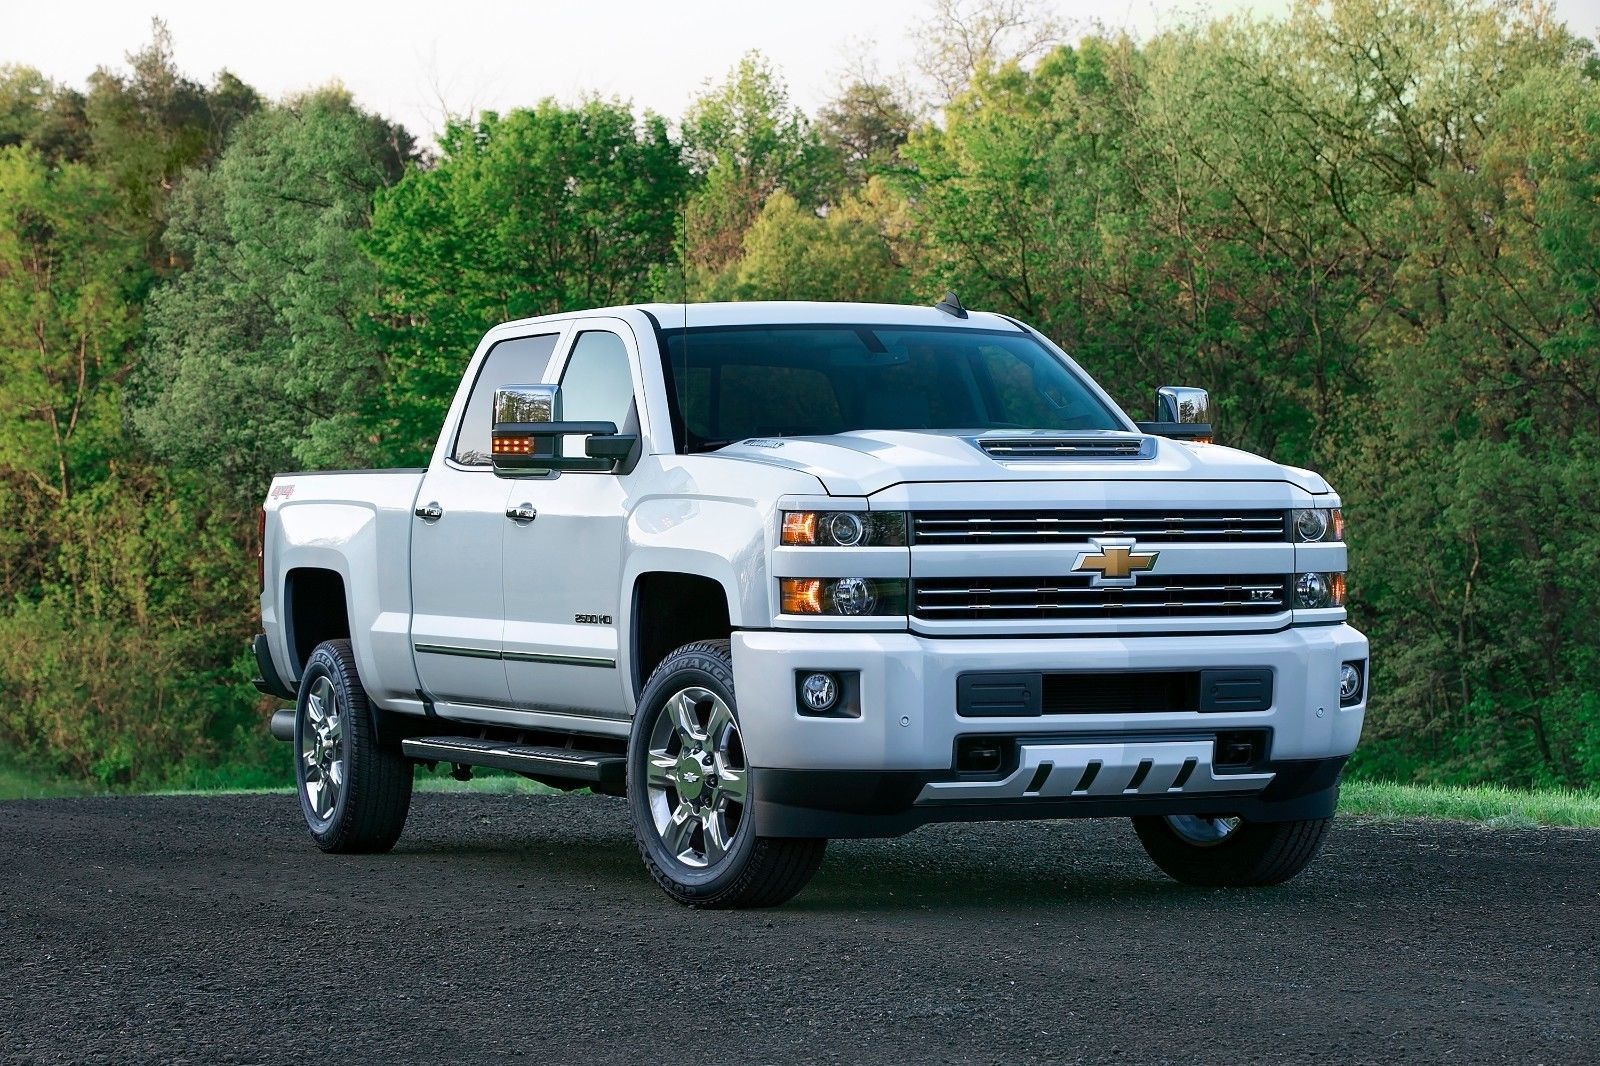 Primary image for 2017 Chevrolet Silverado 2500HD 24X36 inch poster, truck